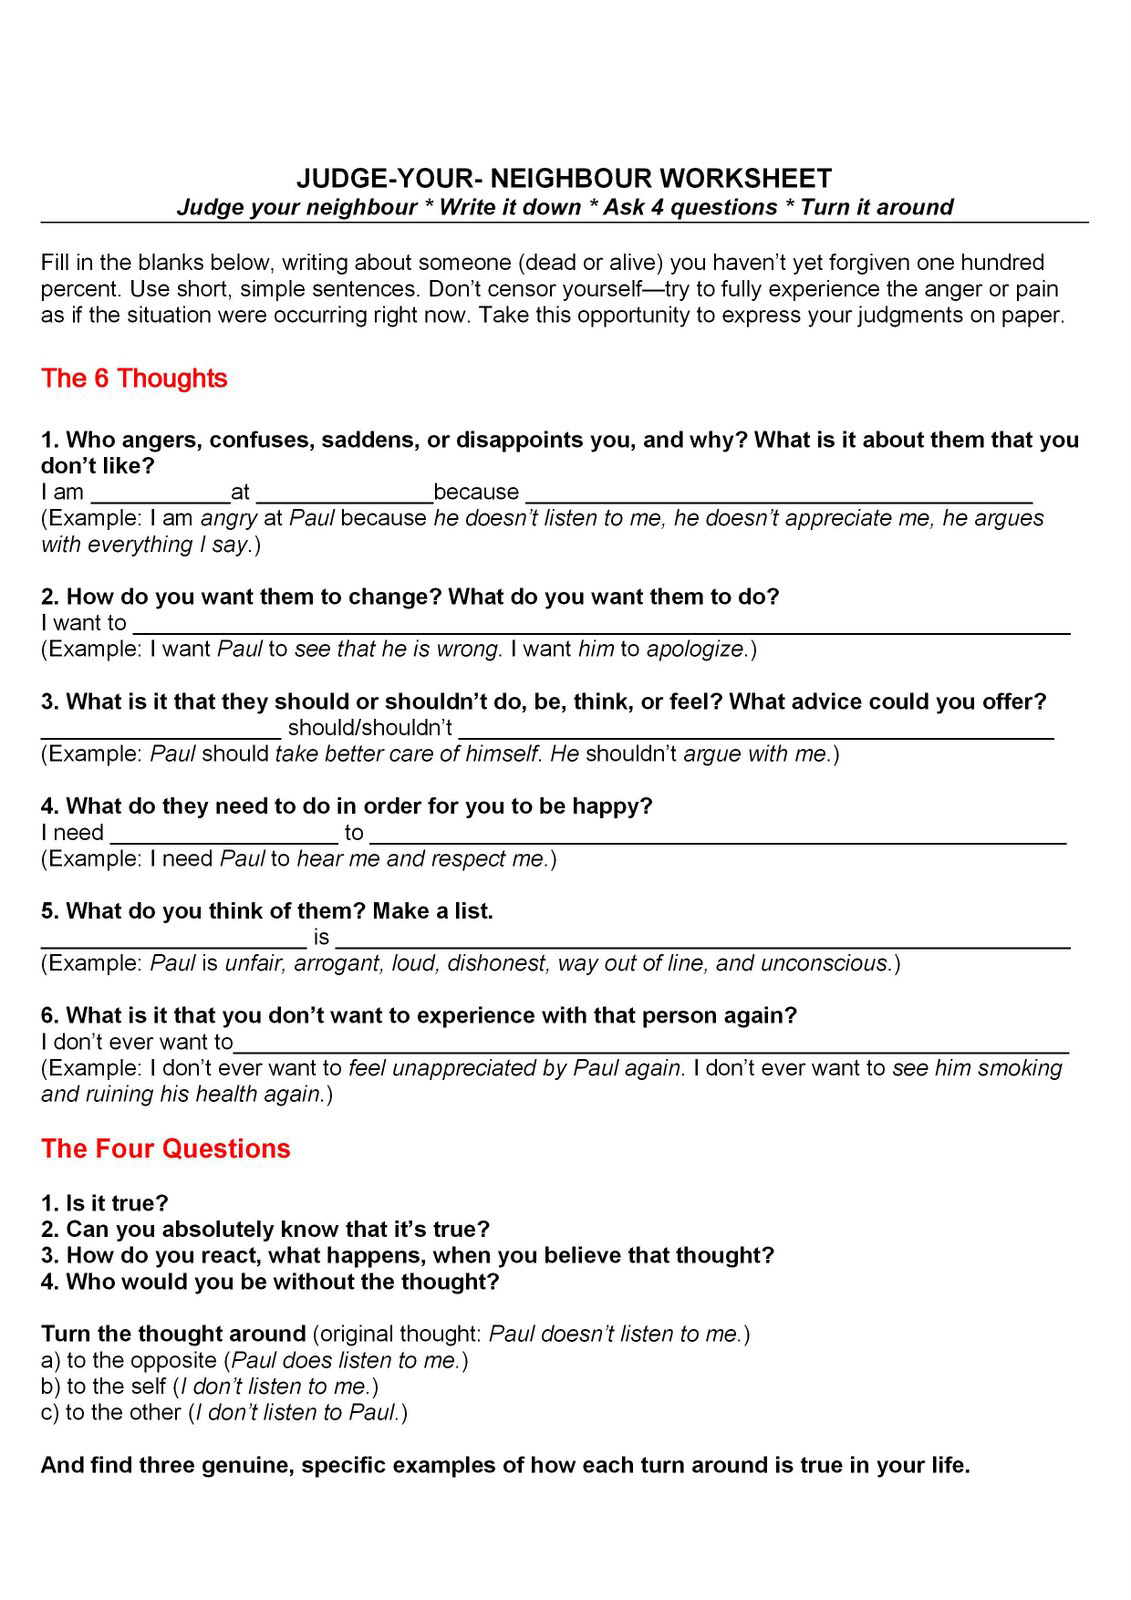 July 2014 Counseling TidBits – Byron Katie 4 Questions Worksheet